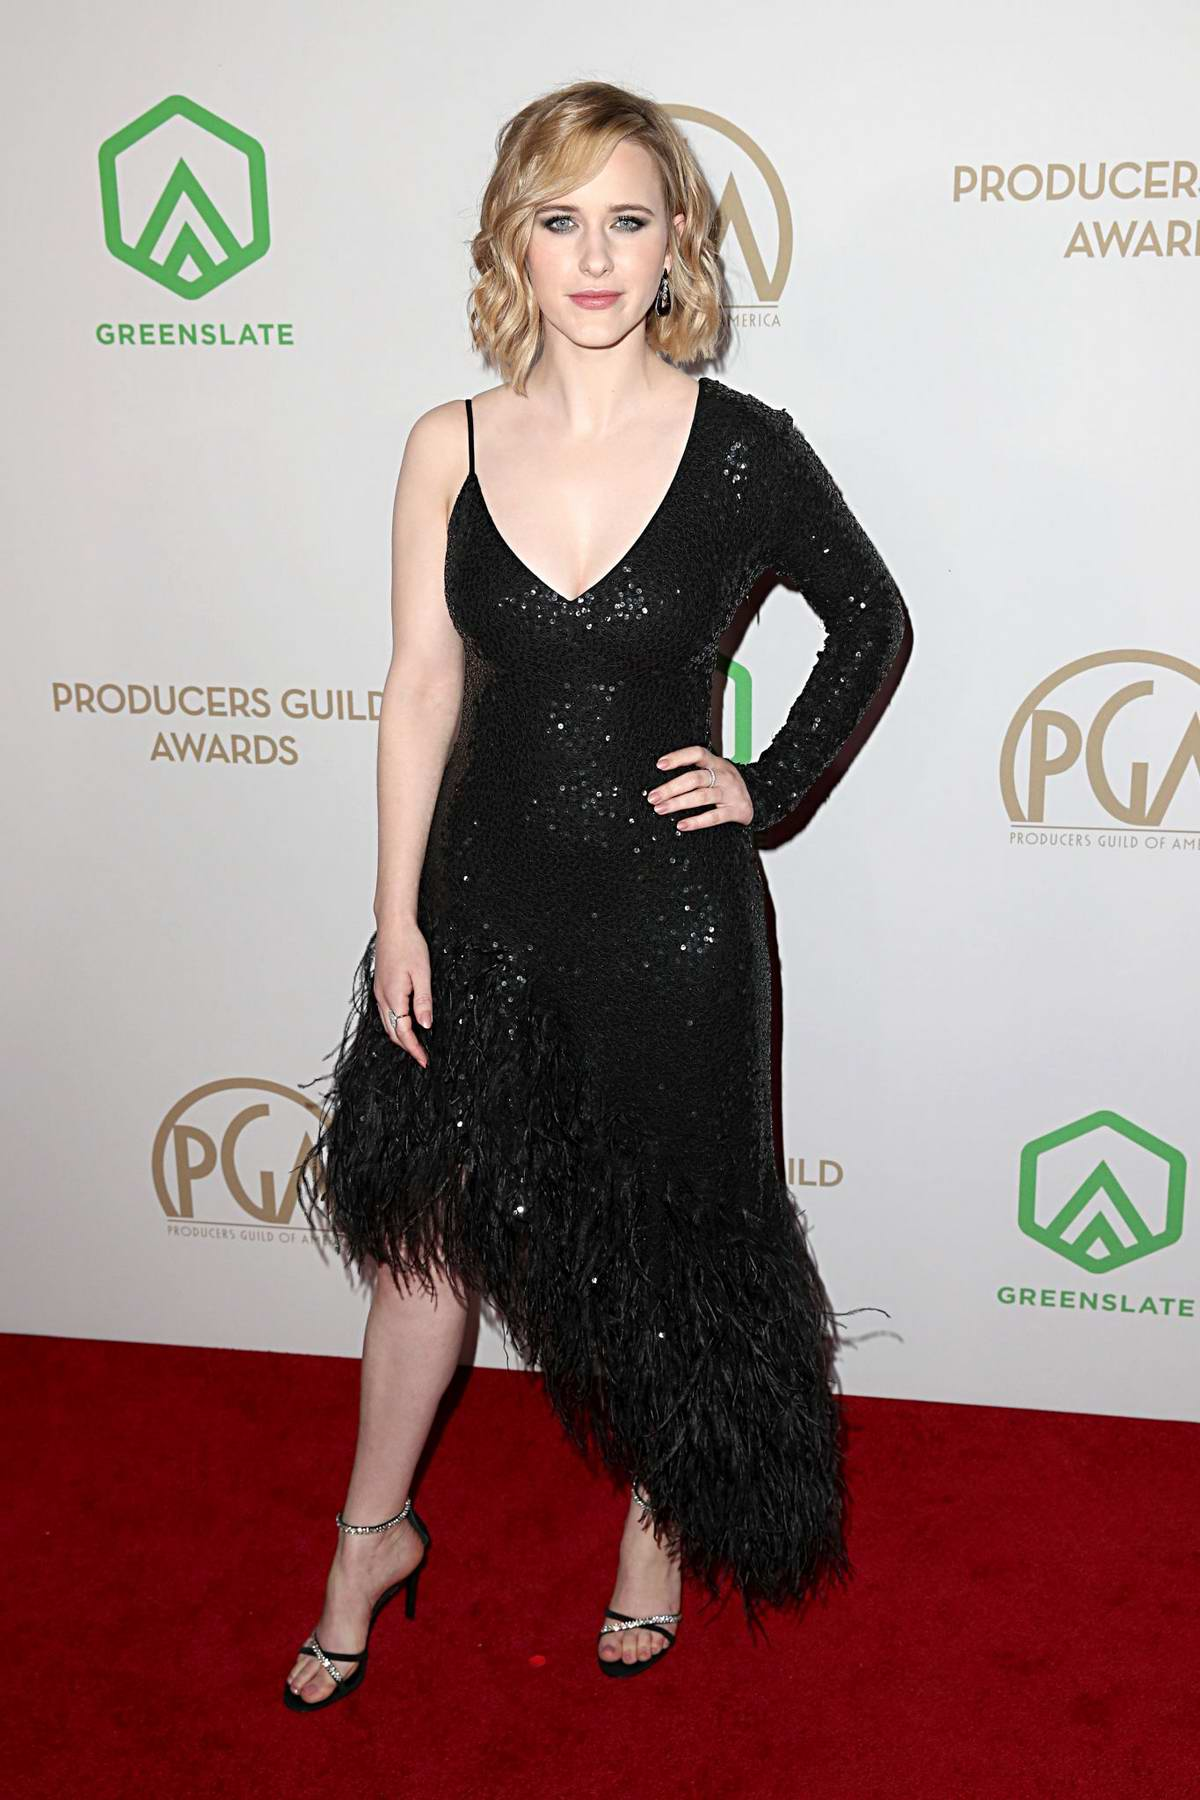 Rachel Brosnahan attends the 31st Annual Producers Guild Awards in Los Angeles